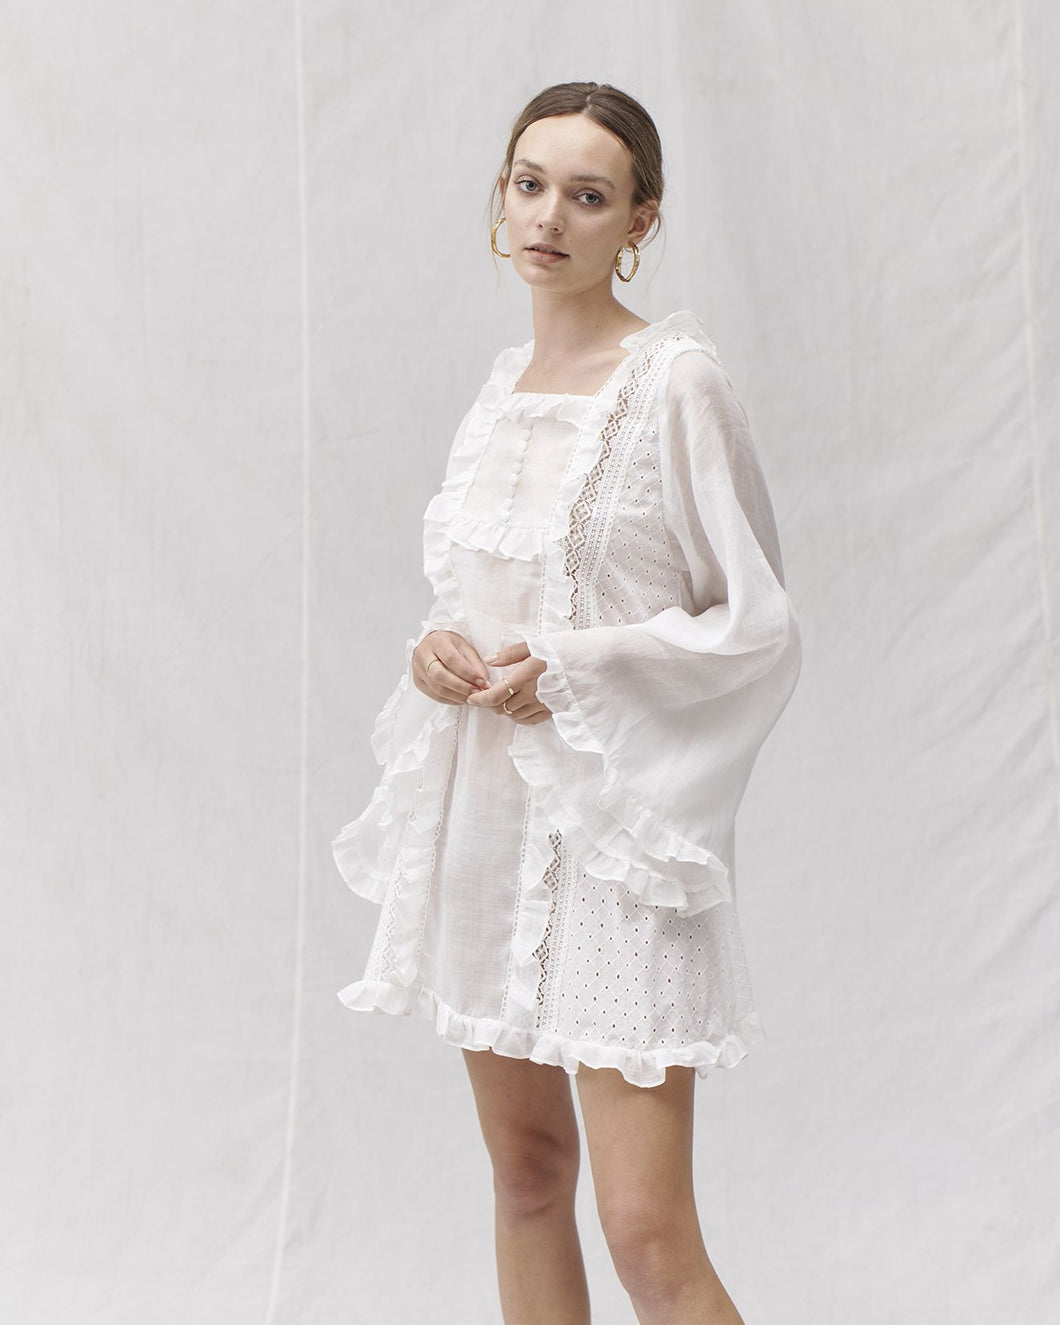 Aspen Ramie Cotton Lace Smock Mini Dress, Ivory | Joslin Studio